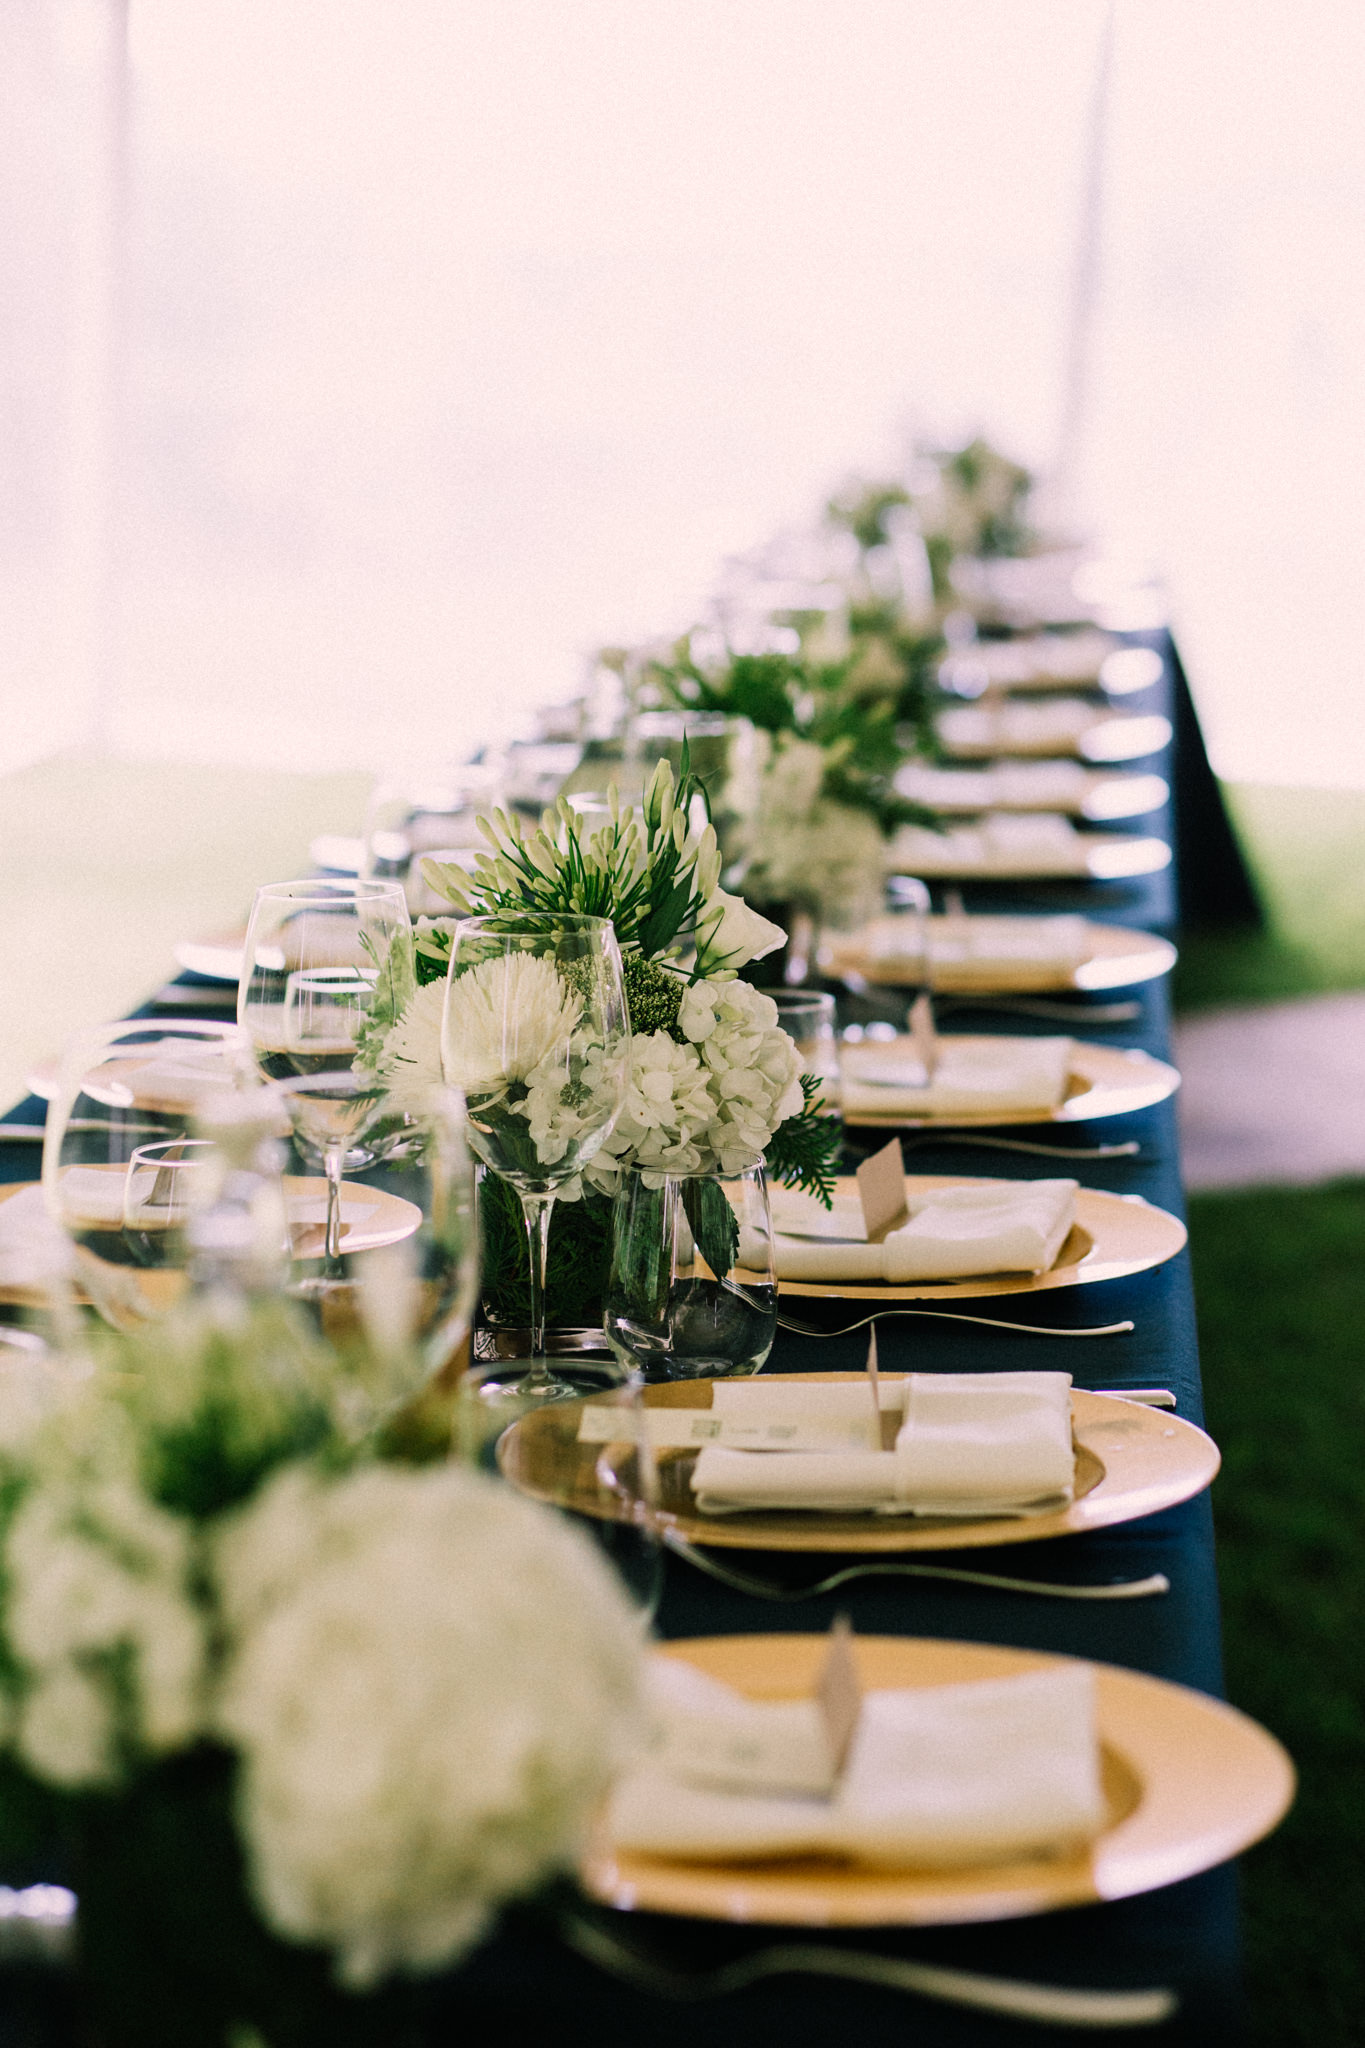 Orillia intimate summer wedding at Ficklewood Farm by Max Wong Photo (14)